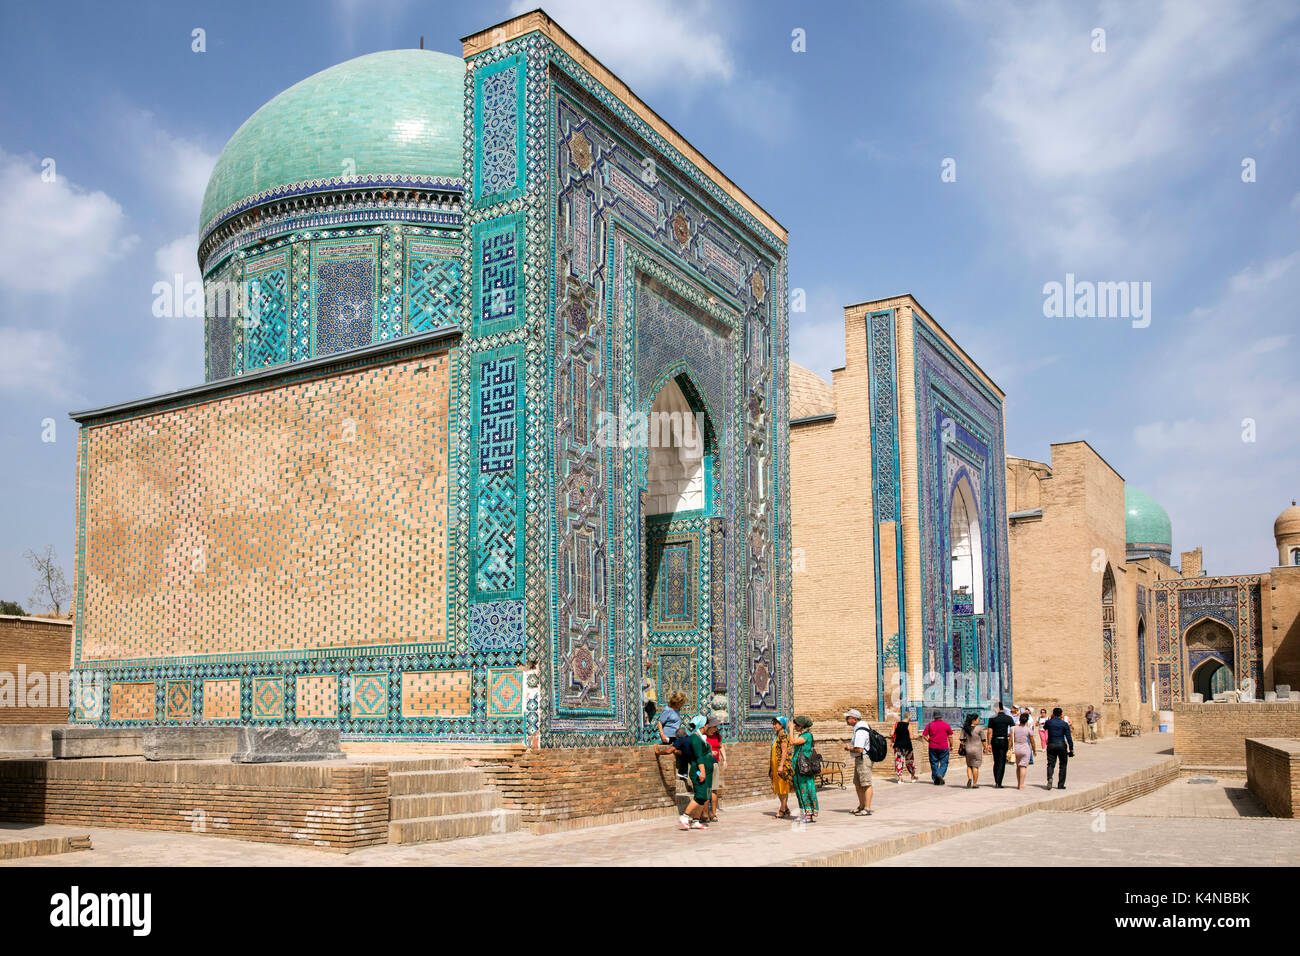 Tourists visiting Shah-i-Zinda, necropolis in the north-eastern part of Samarkand, Uzbekistan - Stock Image